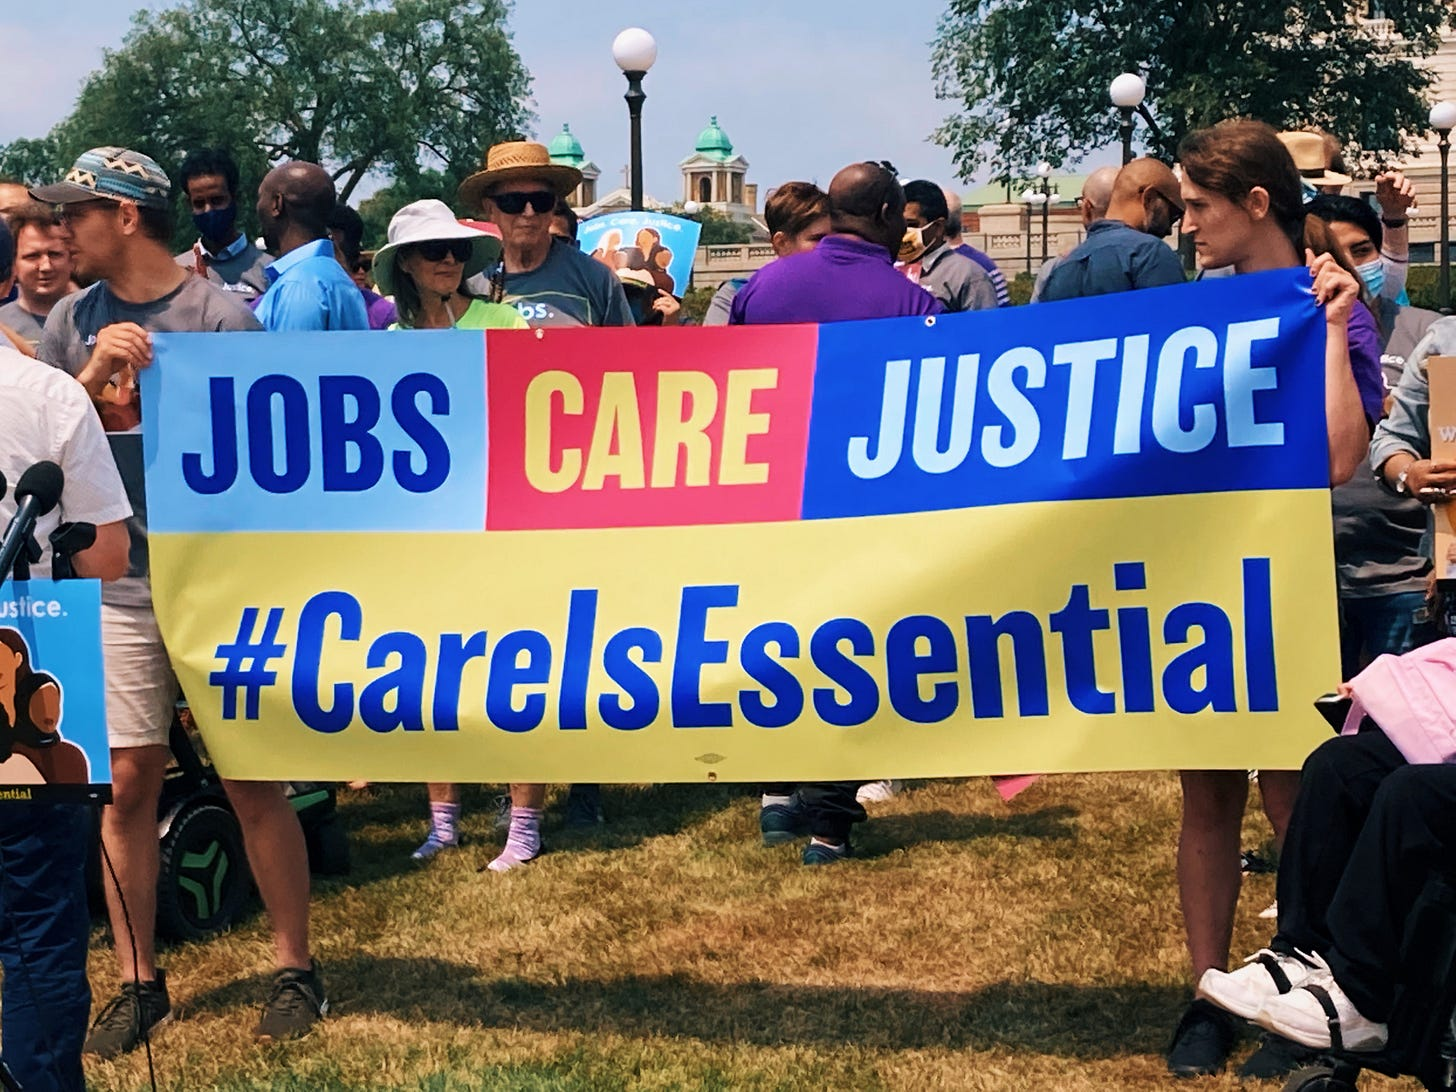 """people hold up banner with text reading """"jobs care justice #careisessential"""" in blue and yellow text with yellow, red, and blue background"""